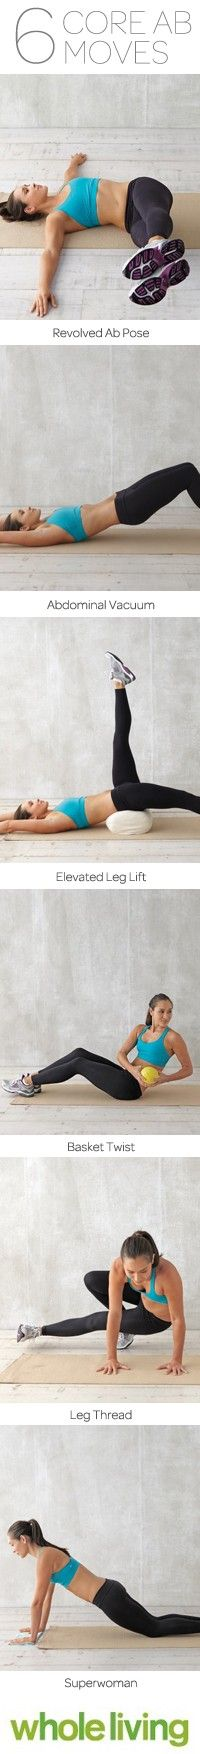 Core AB moves